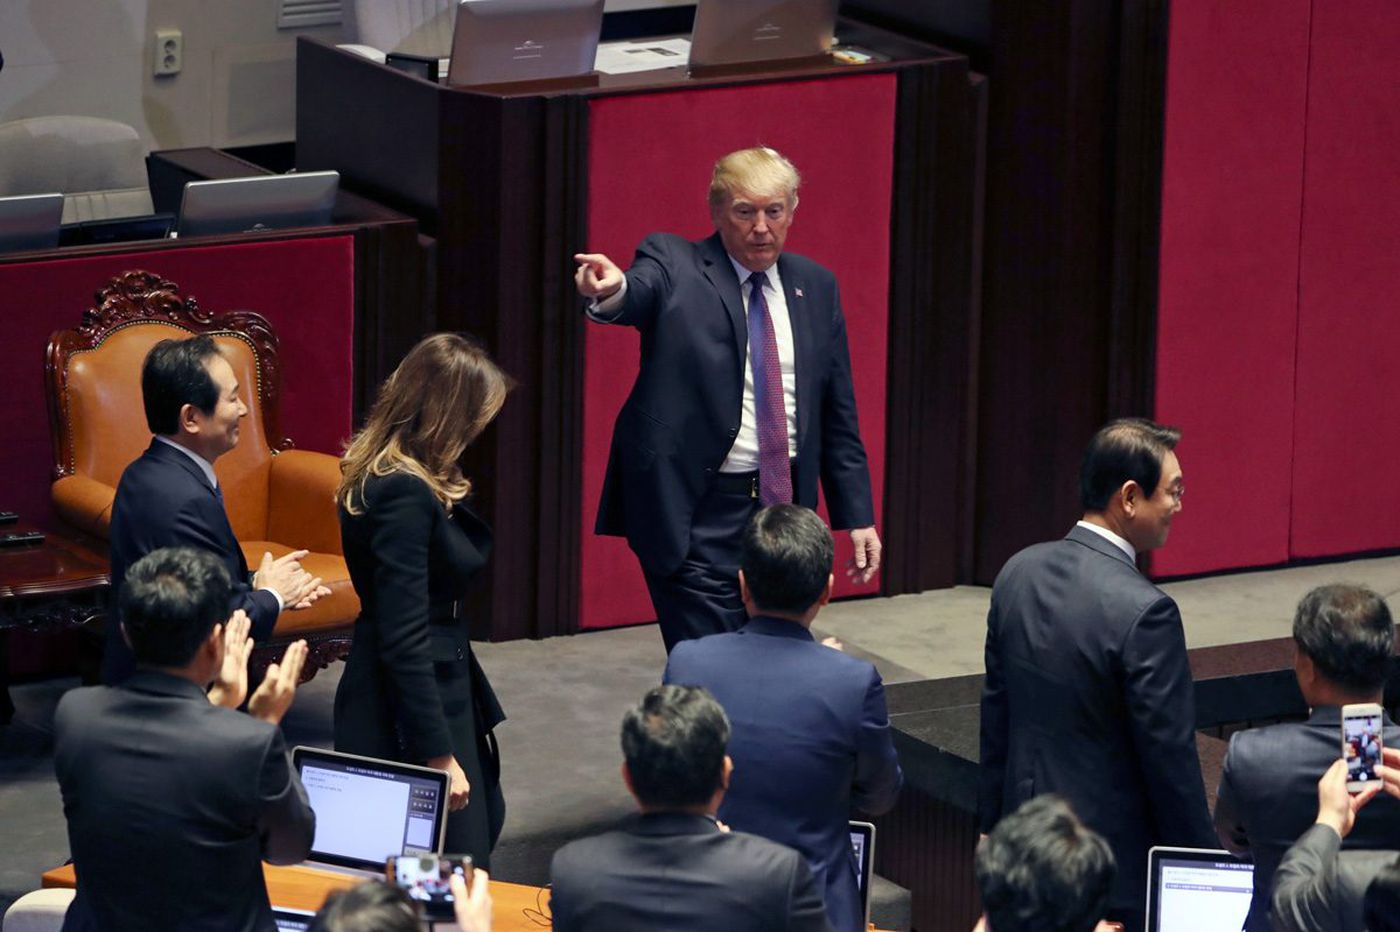 Trump promotes his New Jersey golf course during speech to South Korea parliament